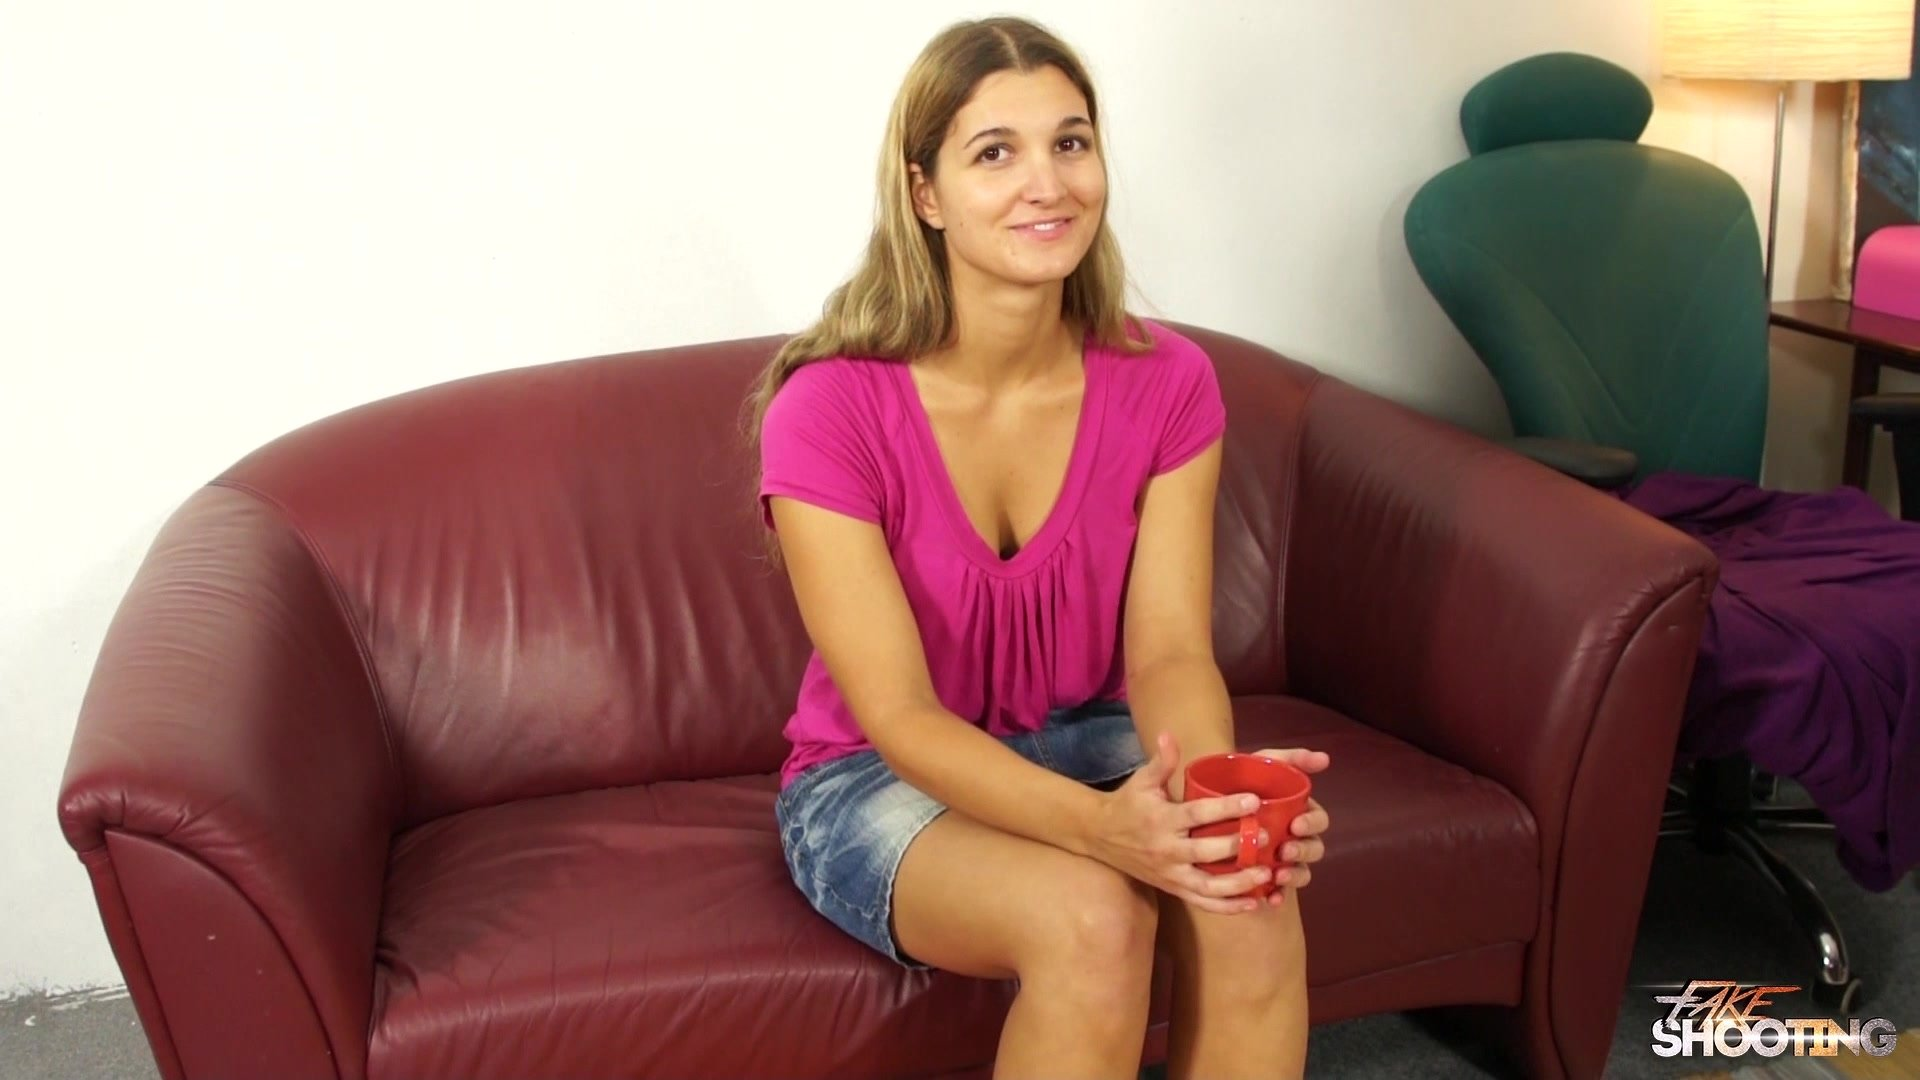 Amateur squirting videos authoritative answer